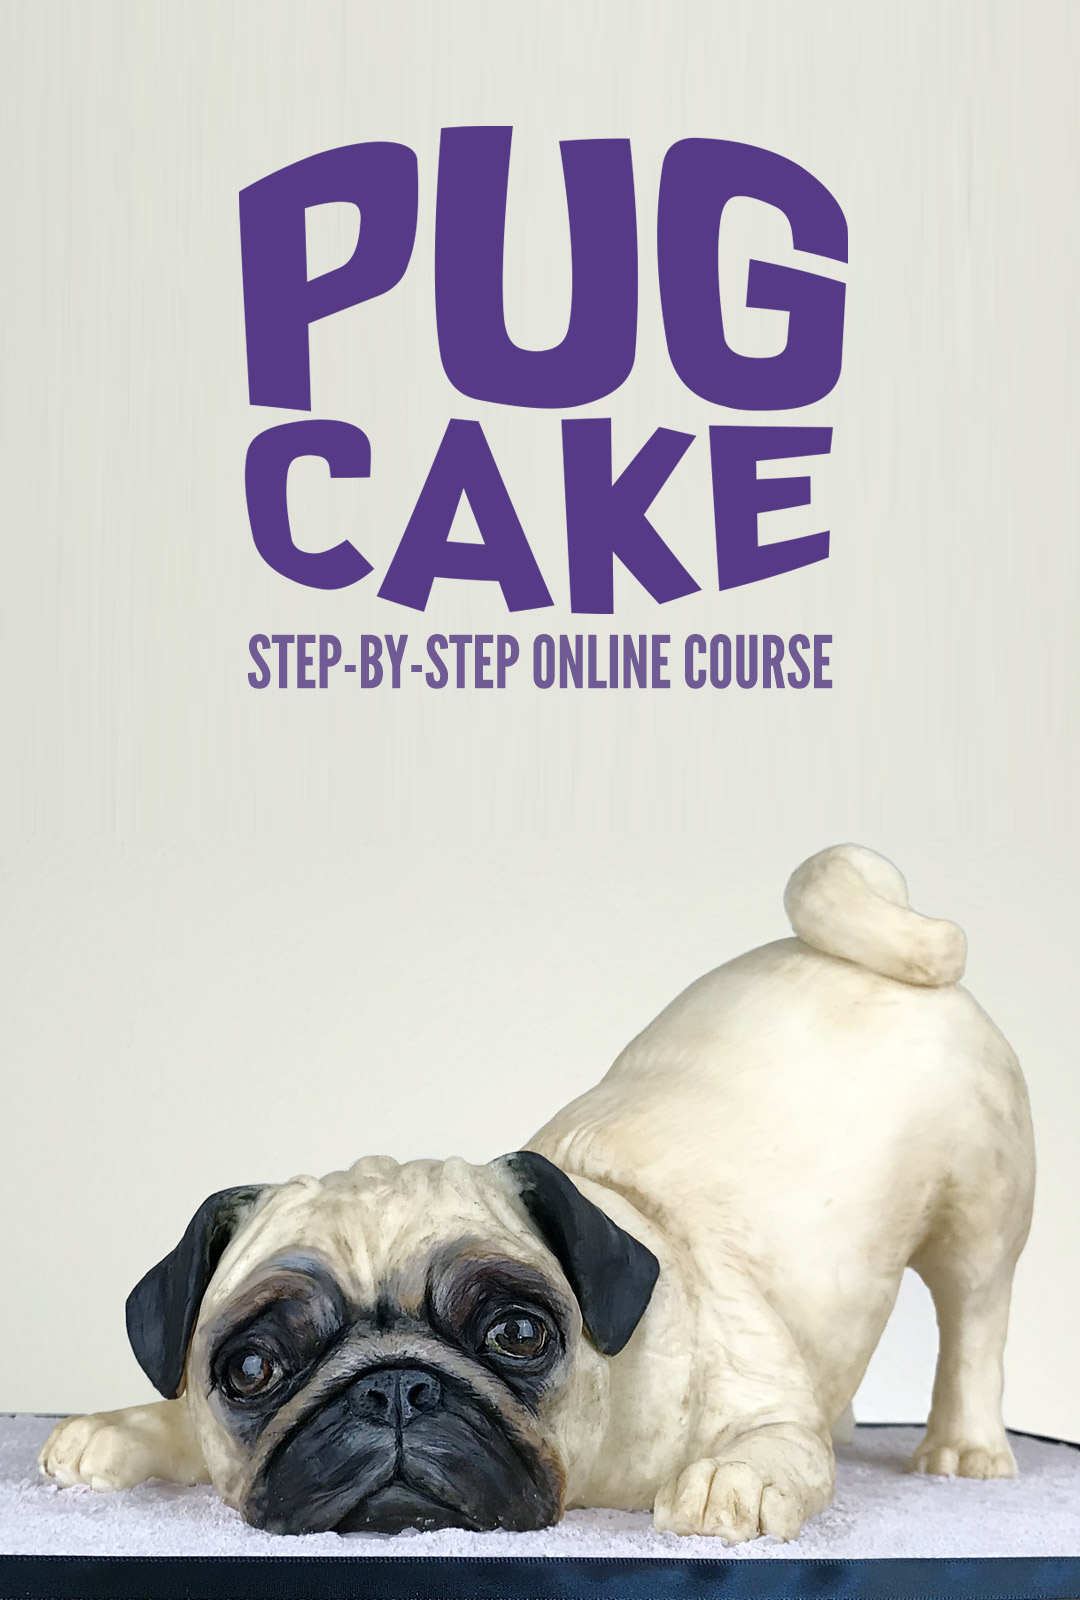 Cake sculpted to look like a realistic Pug dog